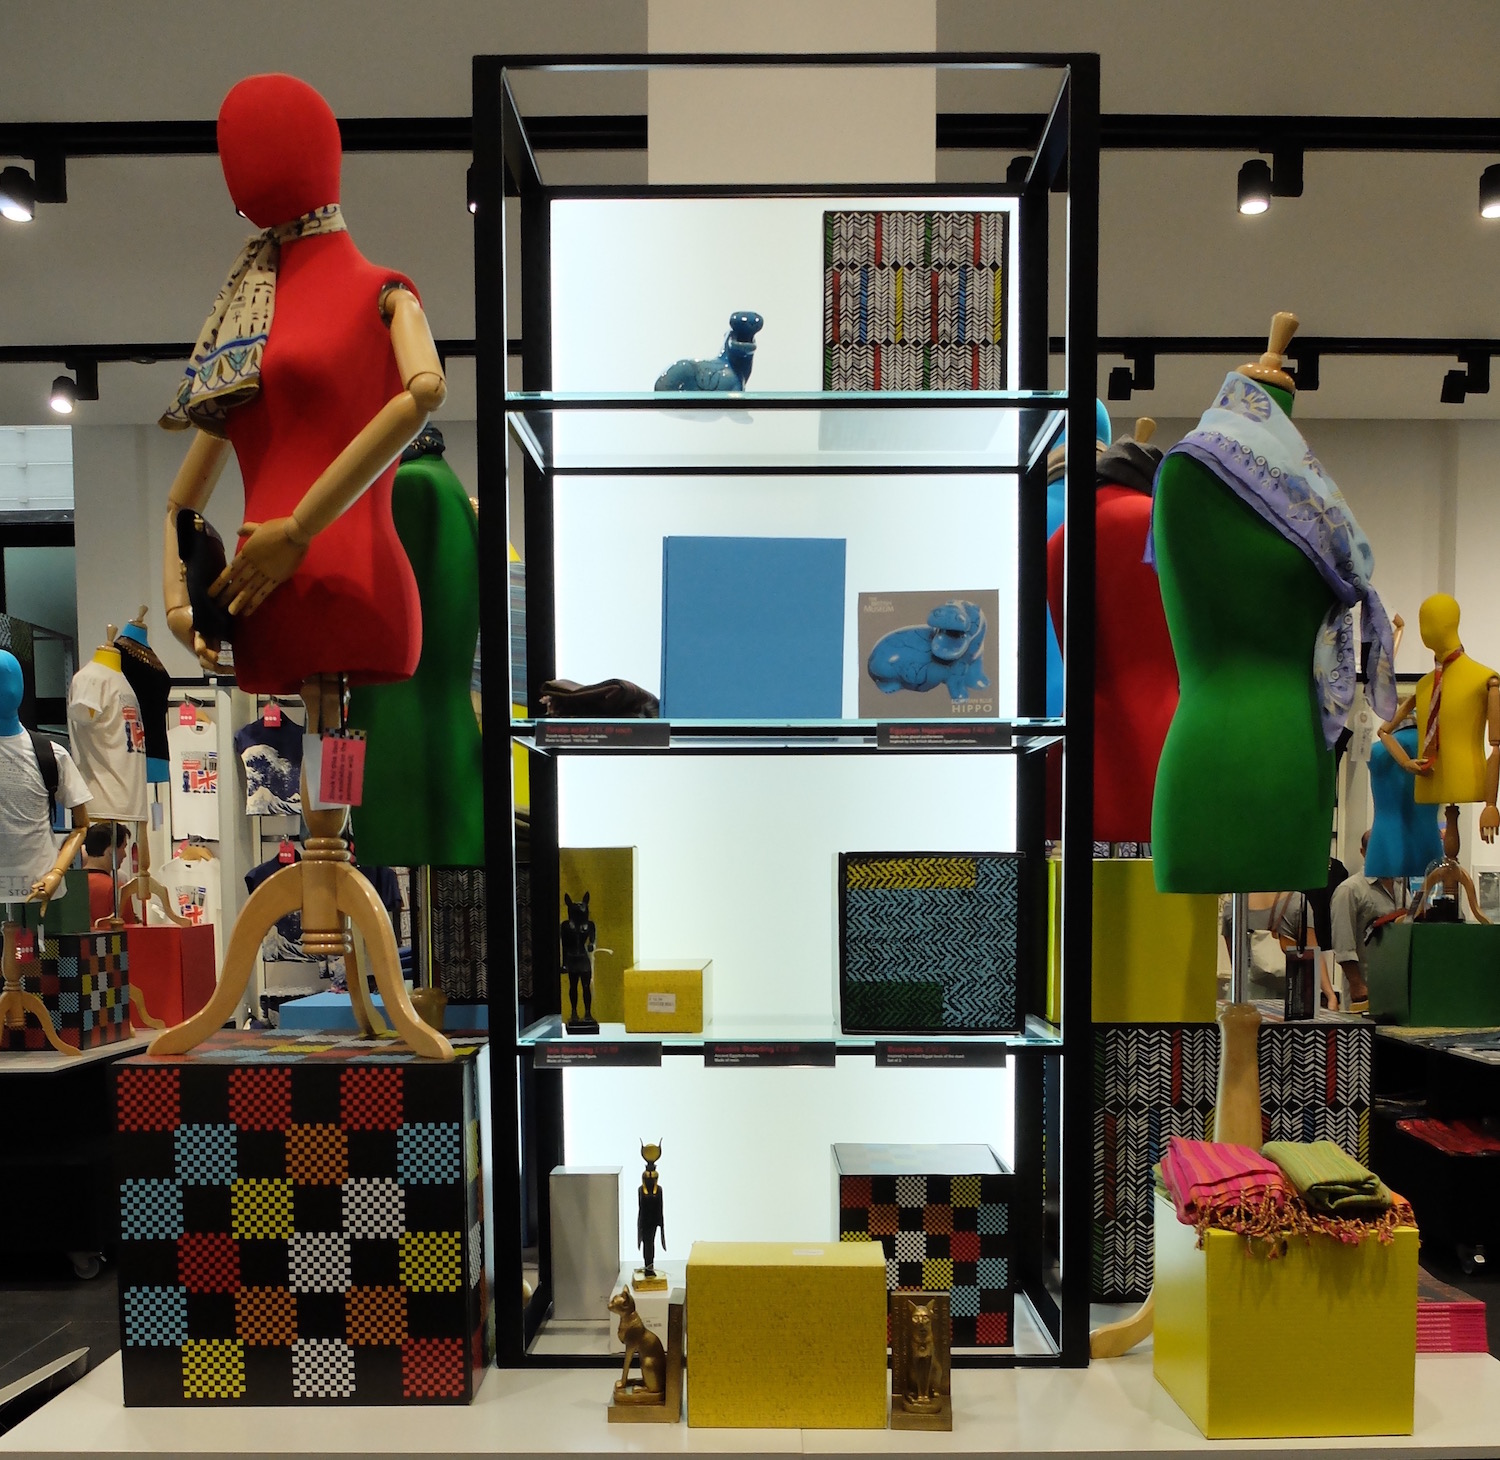 British Museum. Textile Room - Pop-Up Shop (2014)